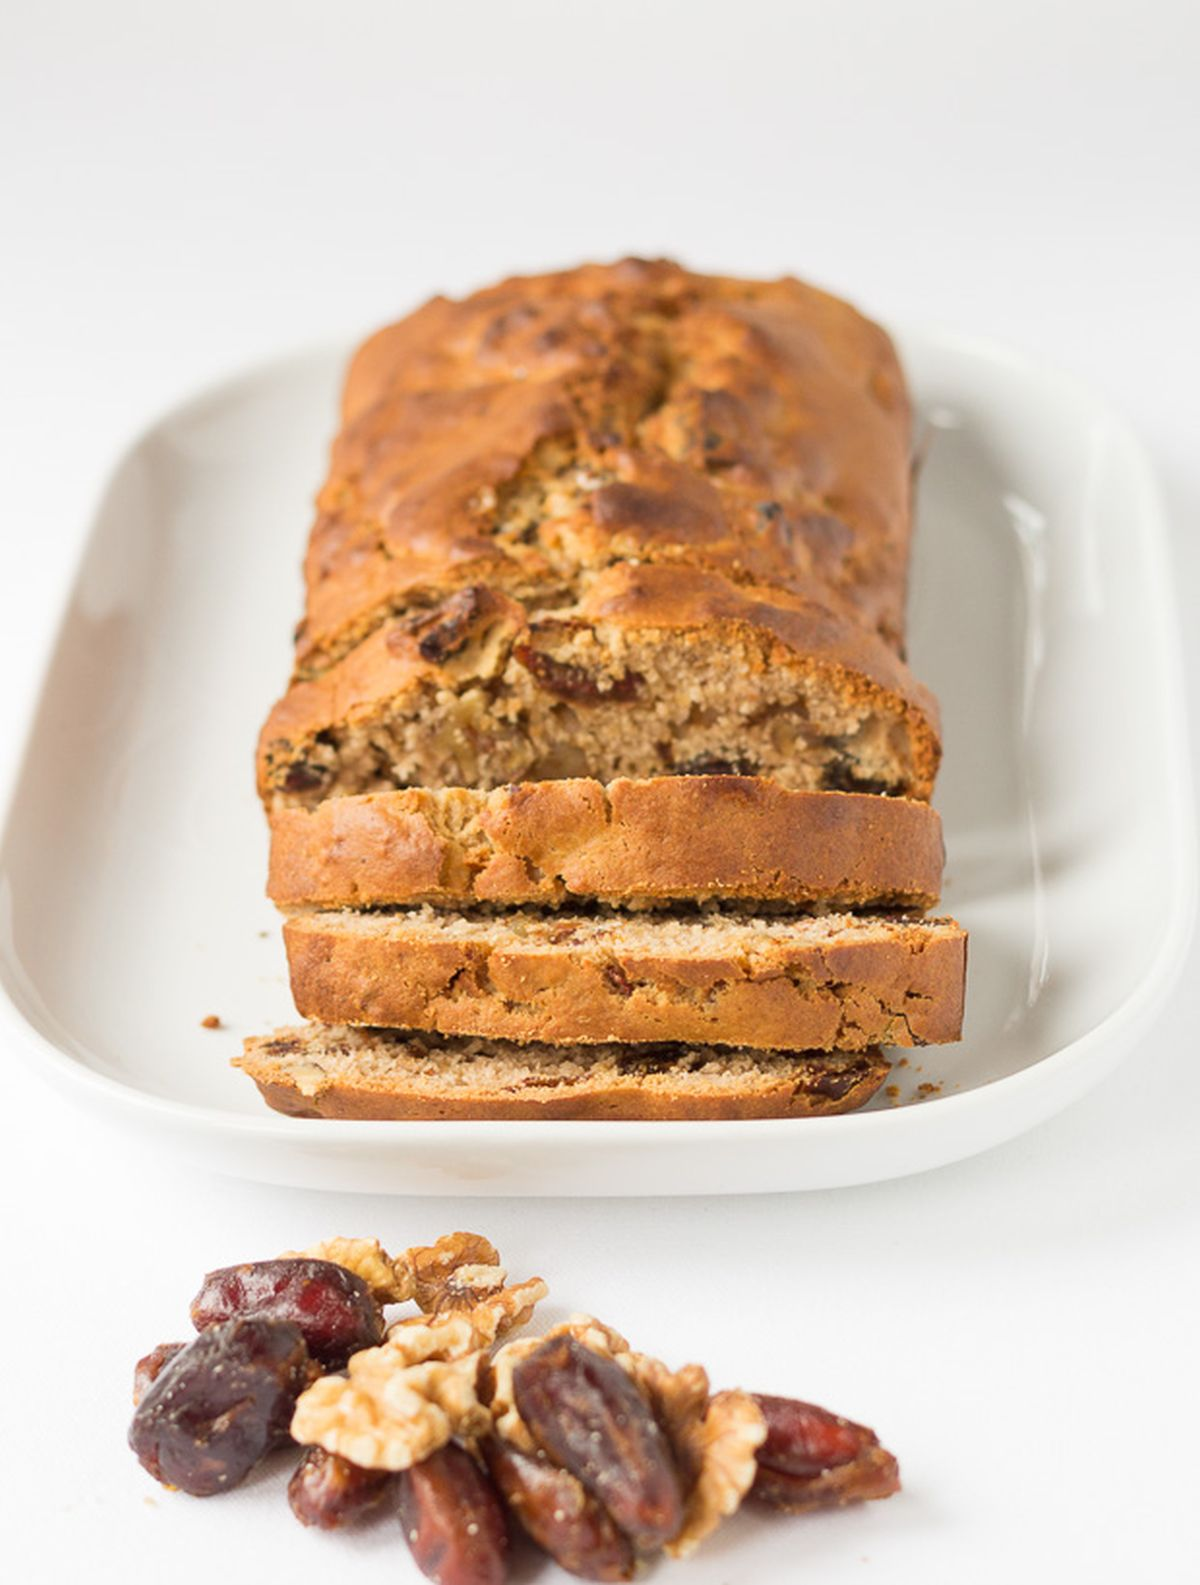 Date and walnut loaf on a white serving platter facing forward with three slices cut off. A pile of date and walnuts in front.